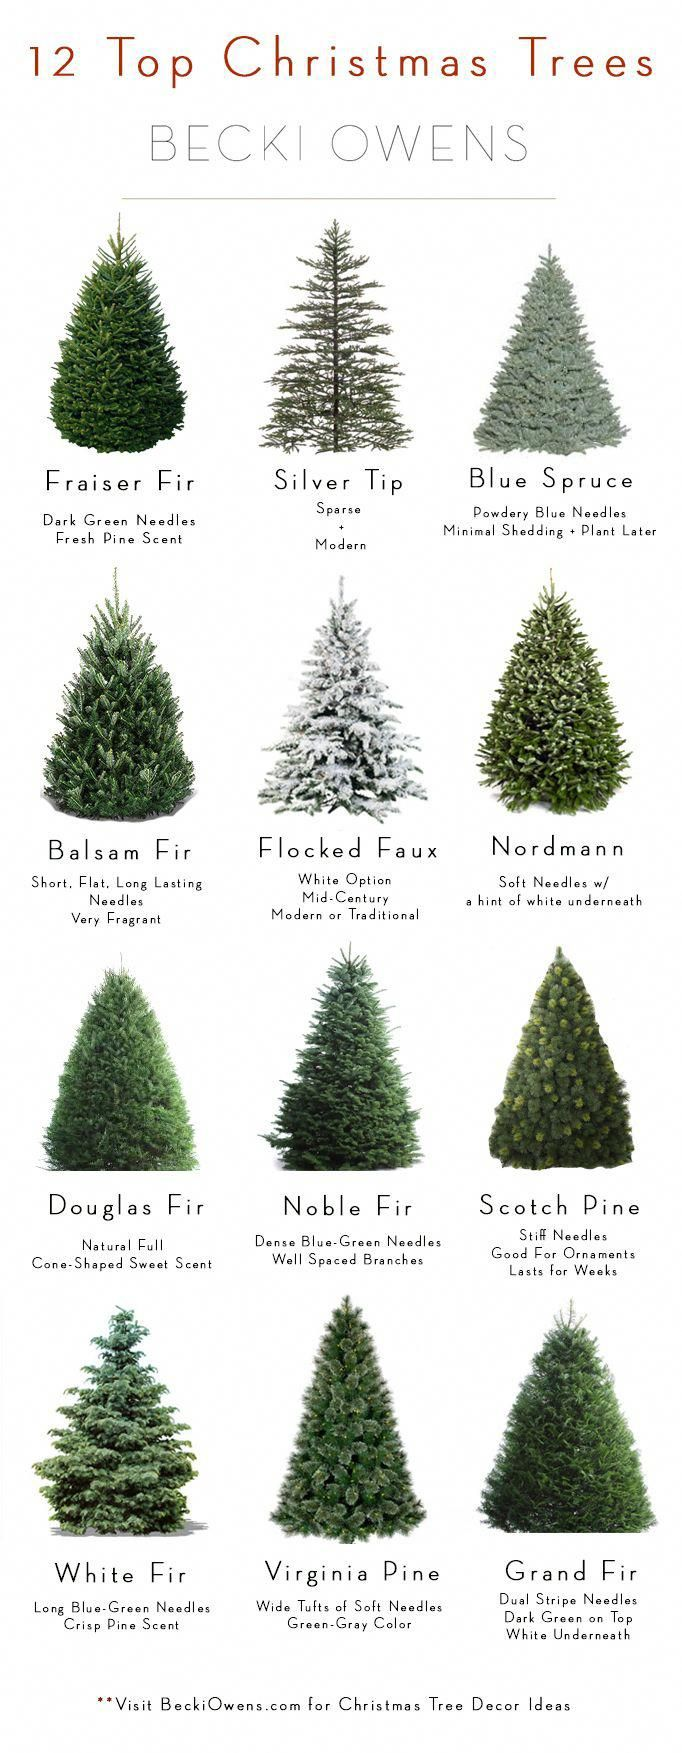 Funky Christmas Tree Decorations Uk Christmas Tree Guide Types Of Christmas Trees Live Christmas Trees